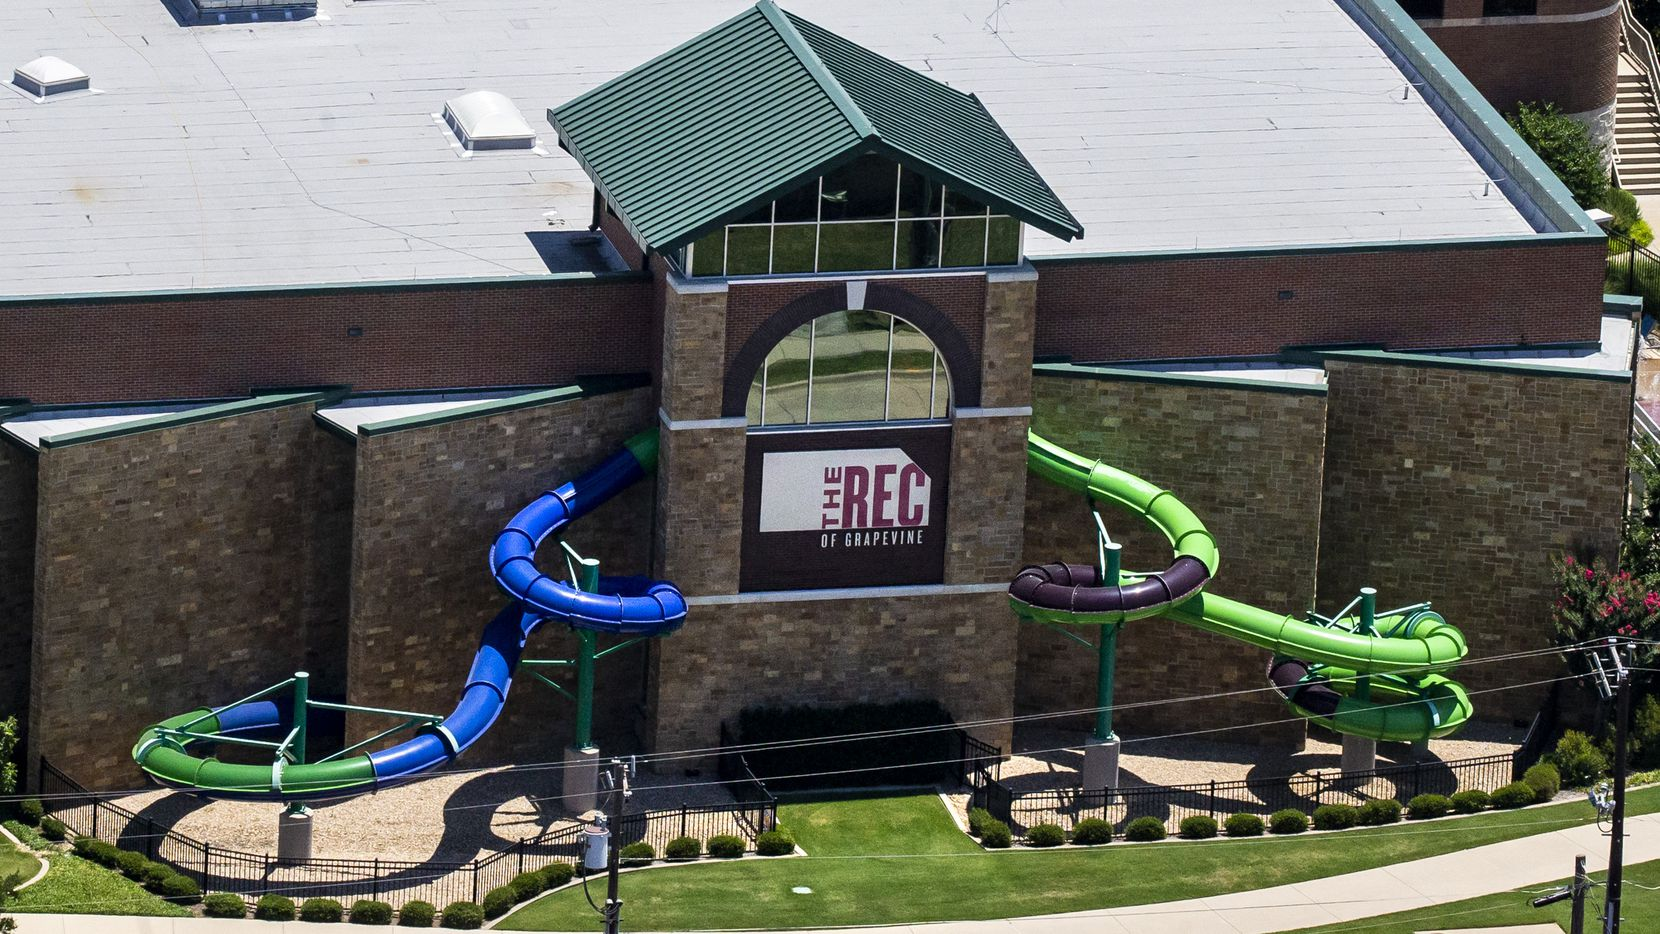 The REC, a multi-generational recreation facility of the Grapevine Parks and Recreation Department, in Grapevine, Texas, on Thursday, June 18, 2020. (Lynda M. Gonzalez/The Dallas Morning News)